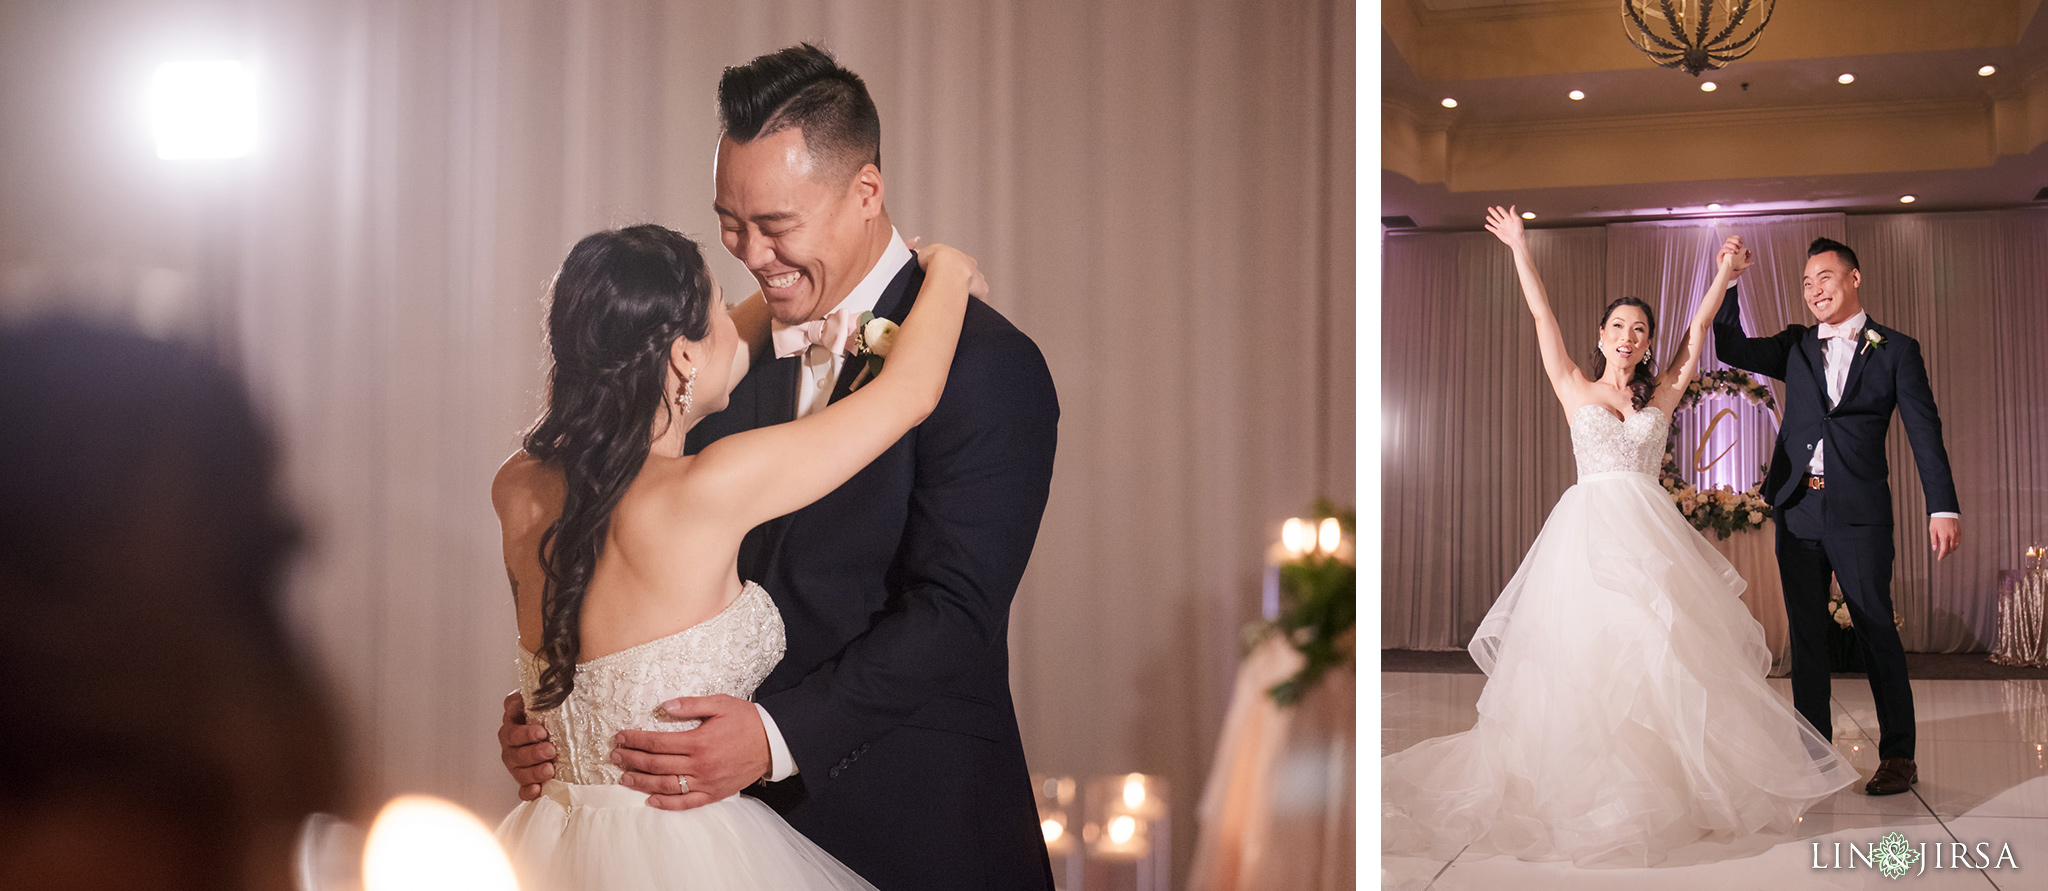 38 Los Coyotes Country Club Buena Park Wedding Photography